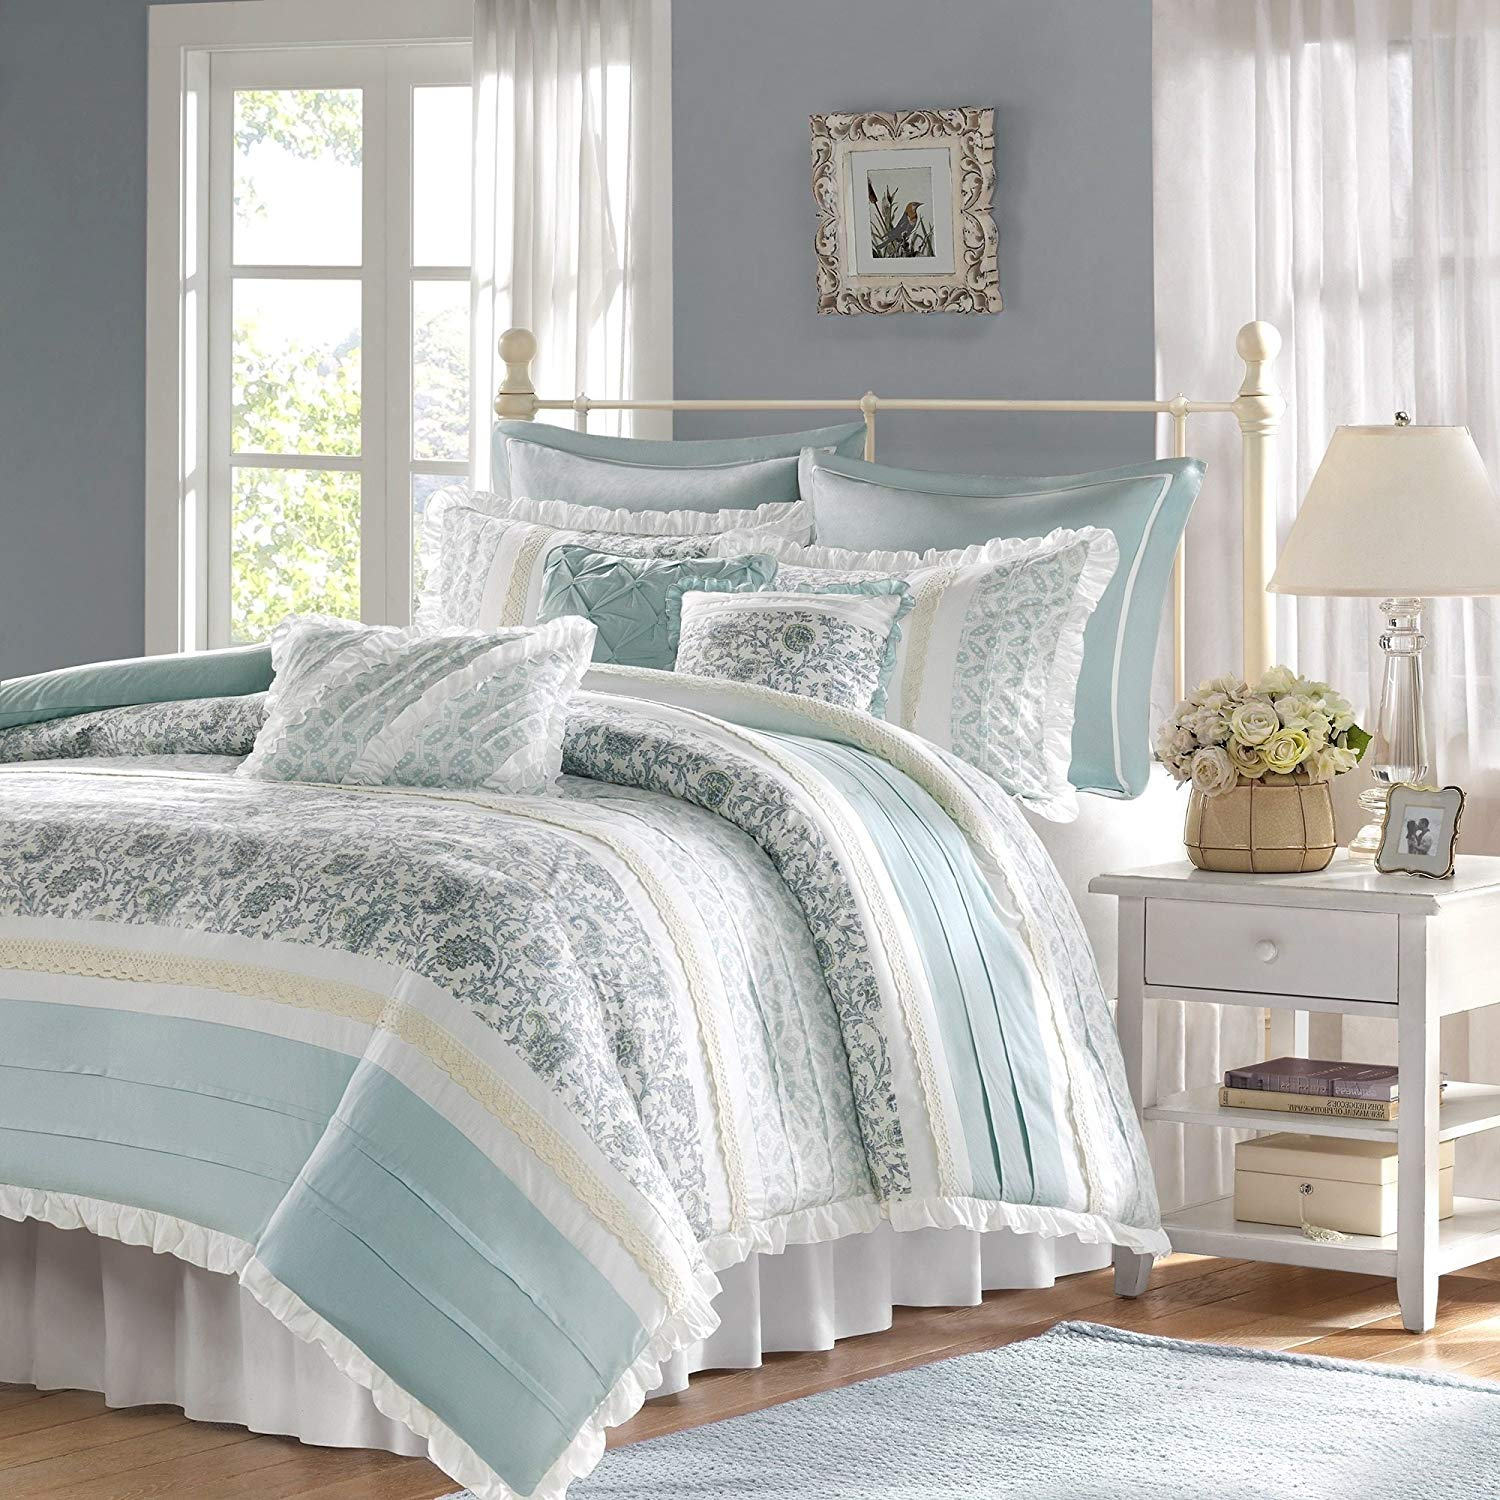 9 Piece Periwinkle Blue Green Paisley Duvet Cover Queen Set, Blue White Shabby Chic Adult Bedding Master Bedroom Stylish Pintuck Ruffled Pattern Ruched Elegant Themed Traditional, Cotton